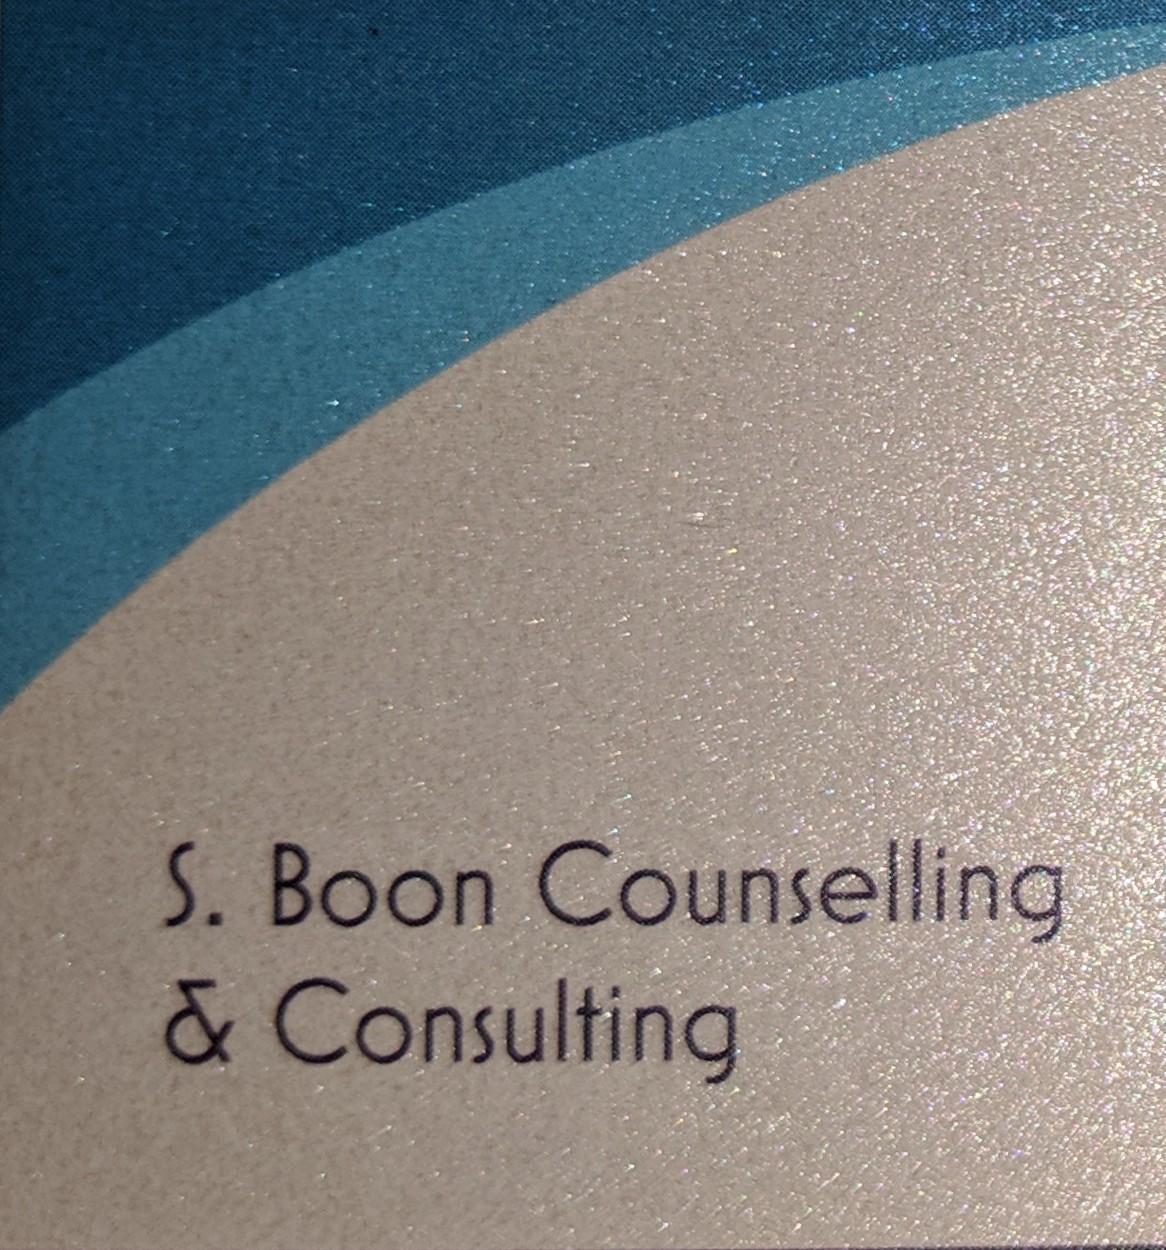 S.Boon Counselling and Consulting